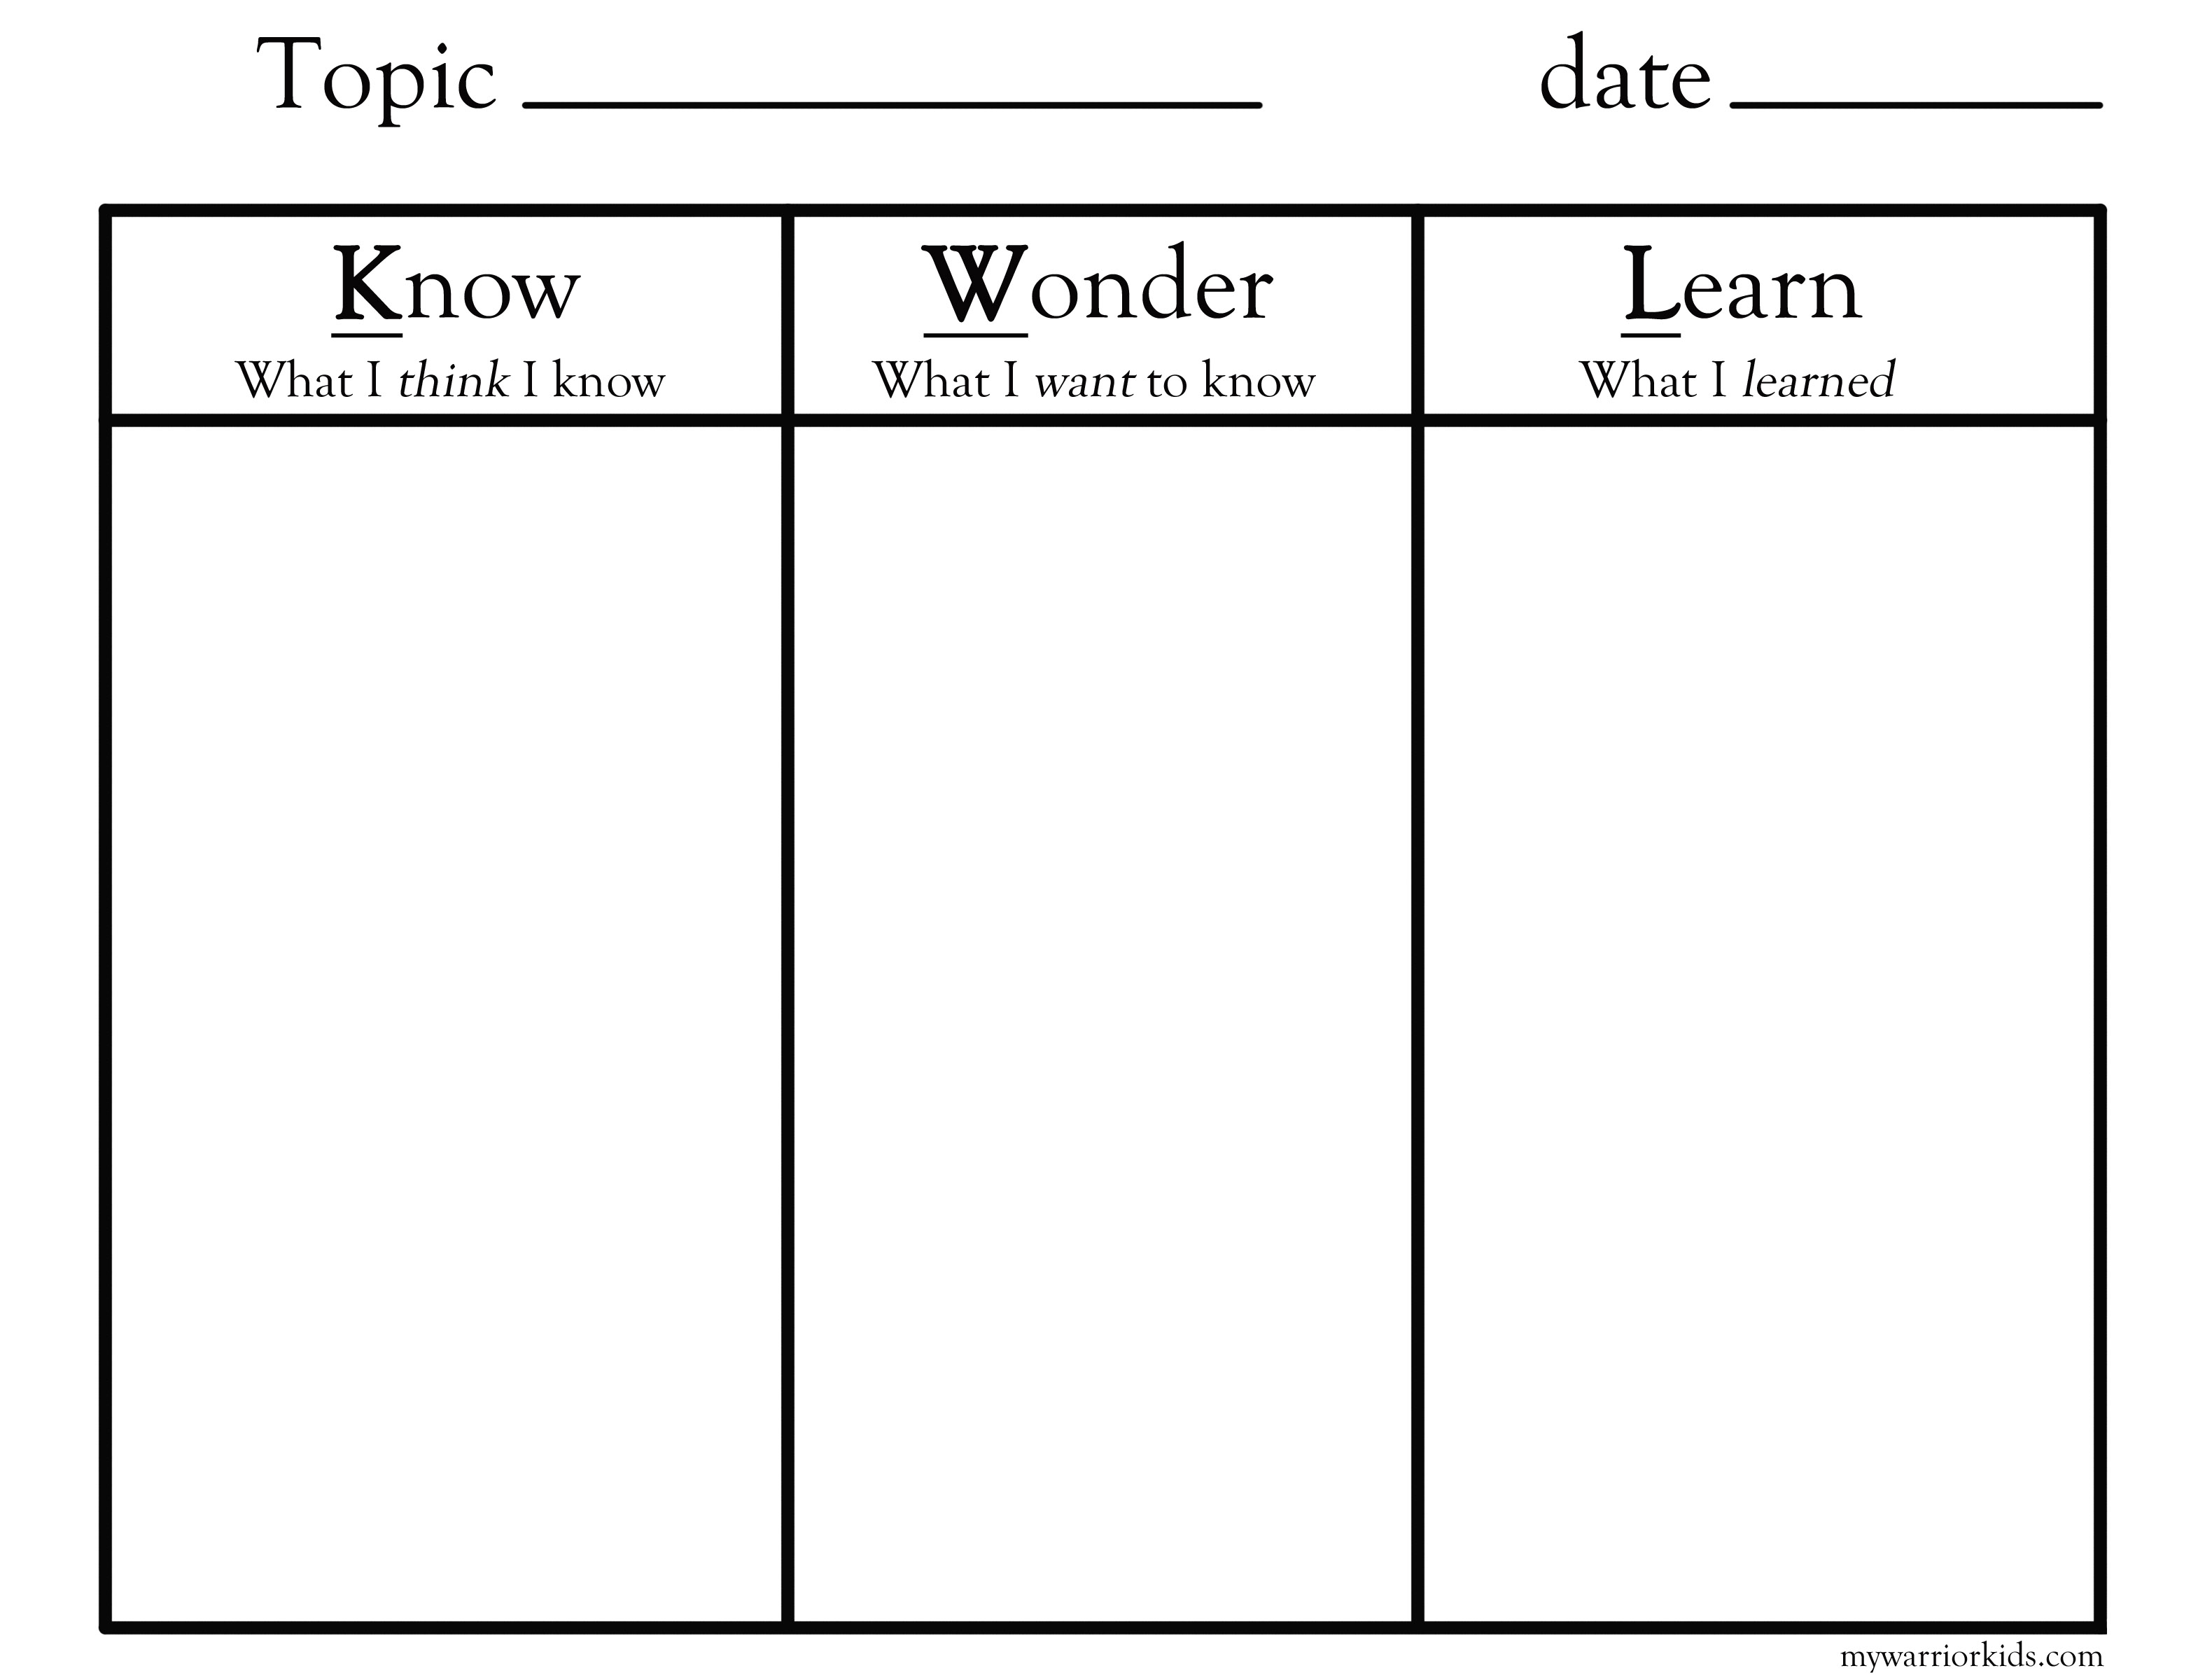 photo regarding Free Printable Kwl Chart called Kwl Chart Template Pdf Ideen für Sie